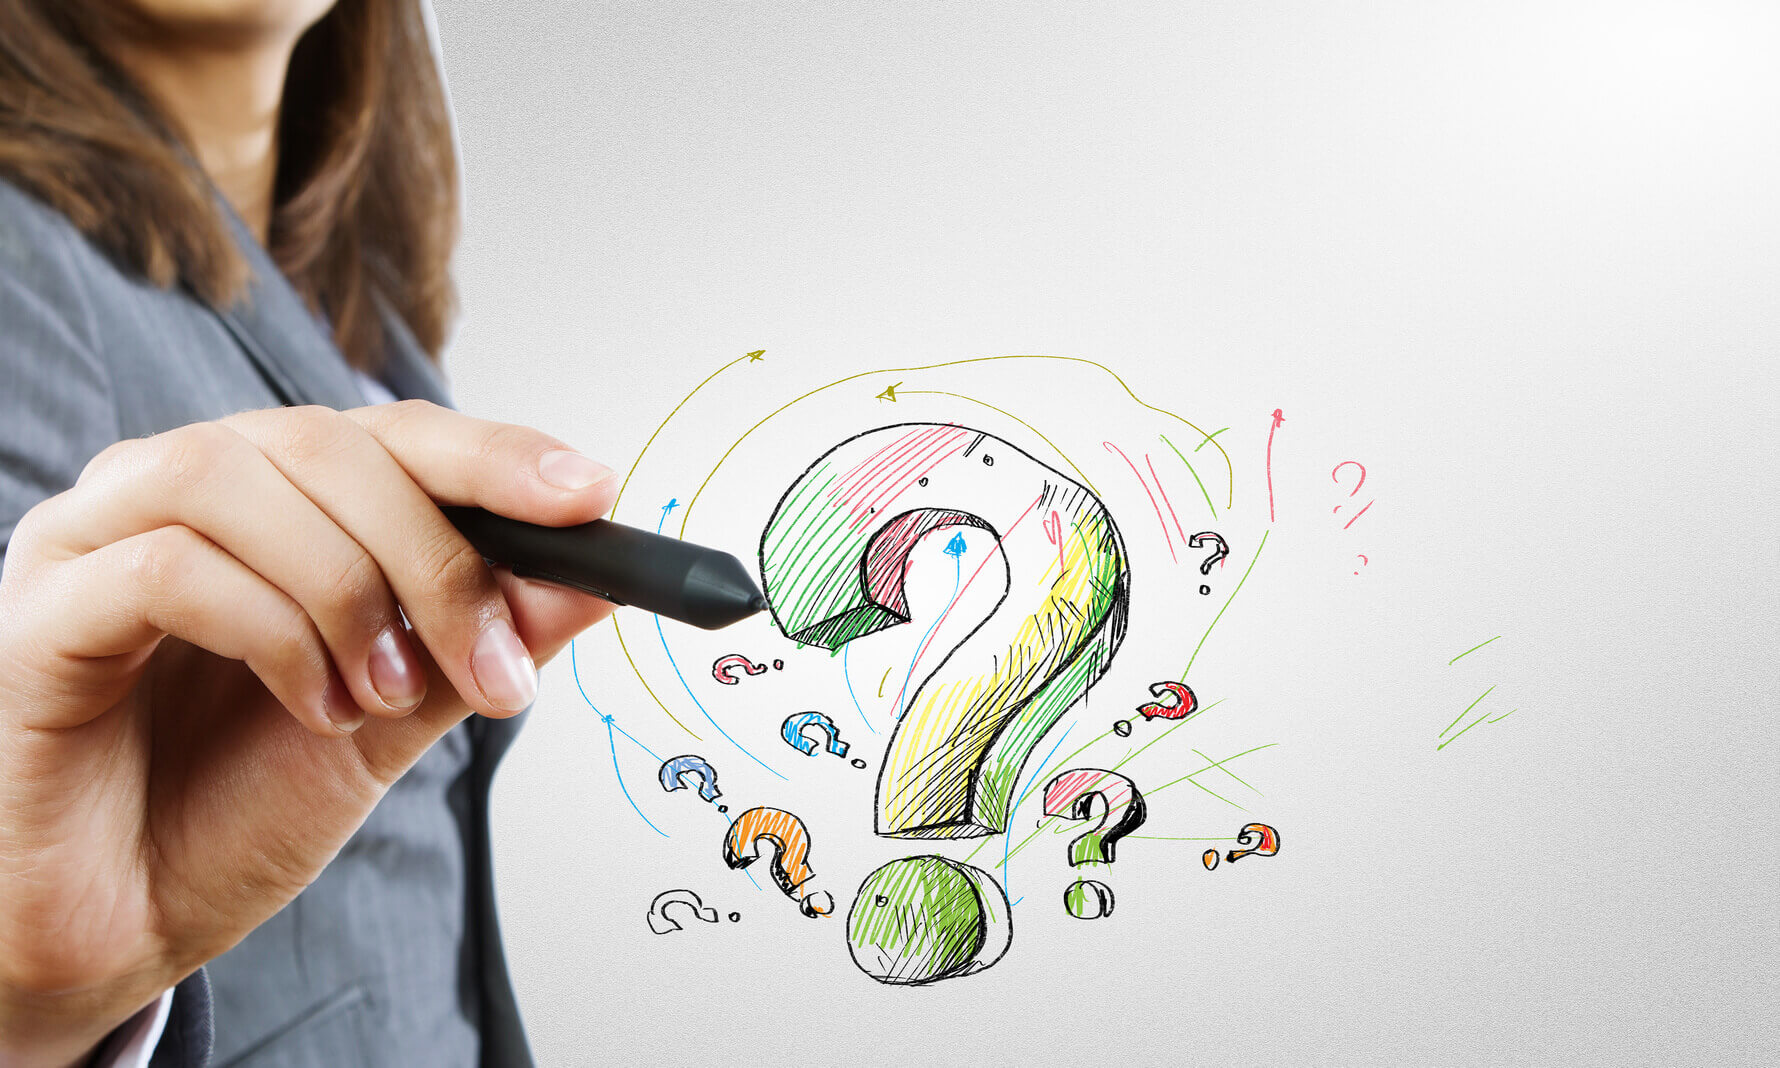 10 Capabilities to Look for in Your Questions and Answers Software